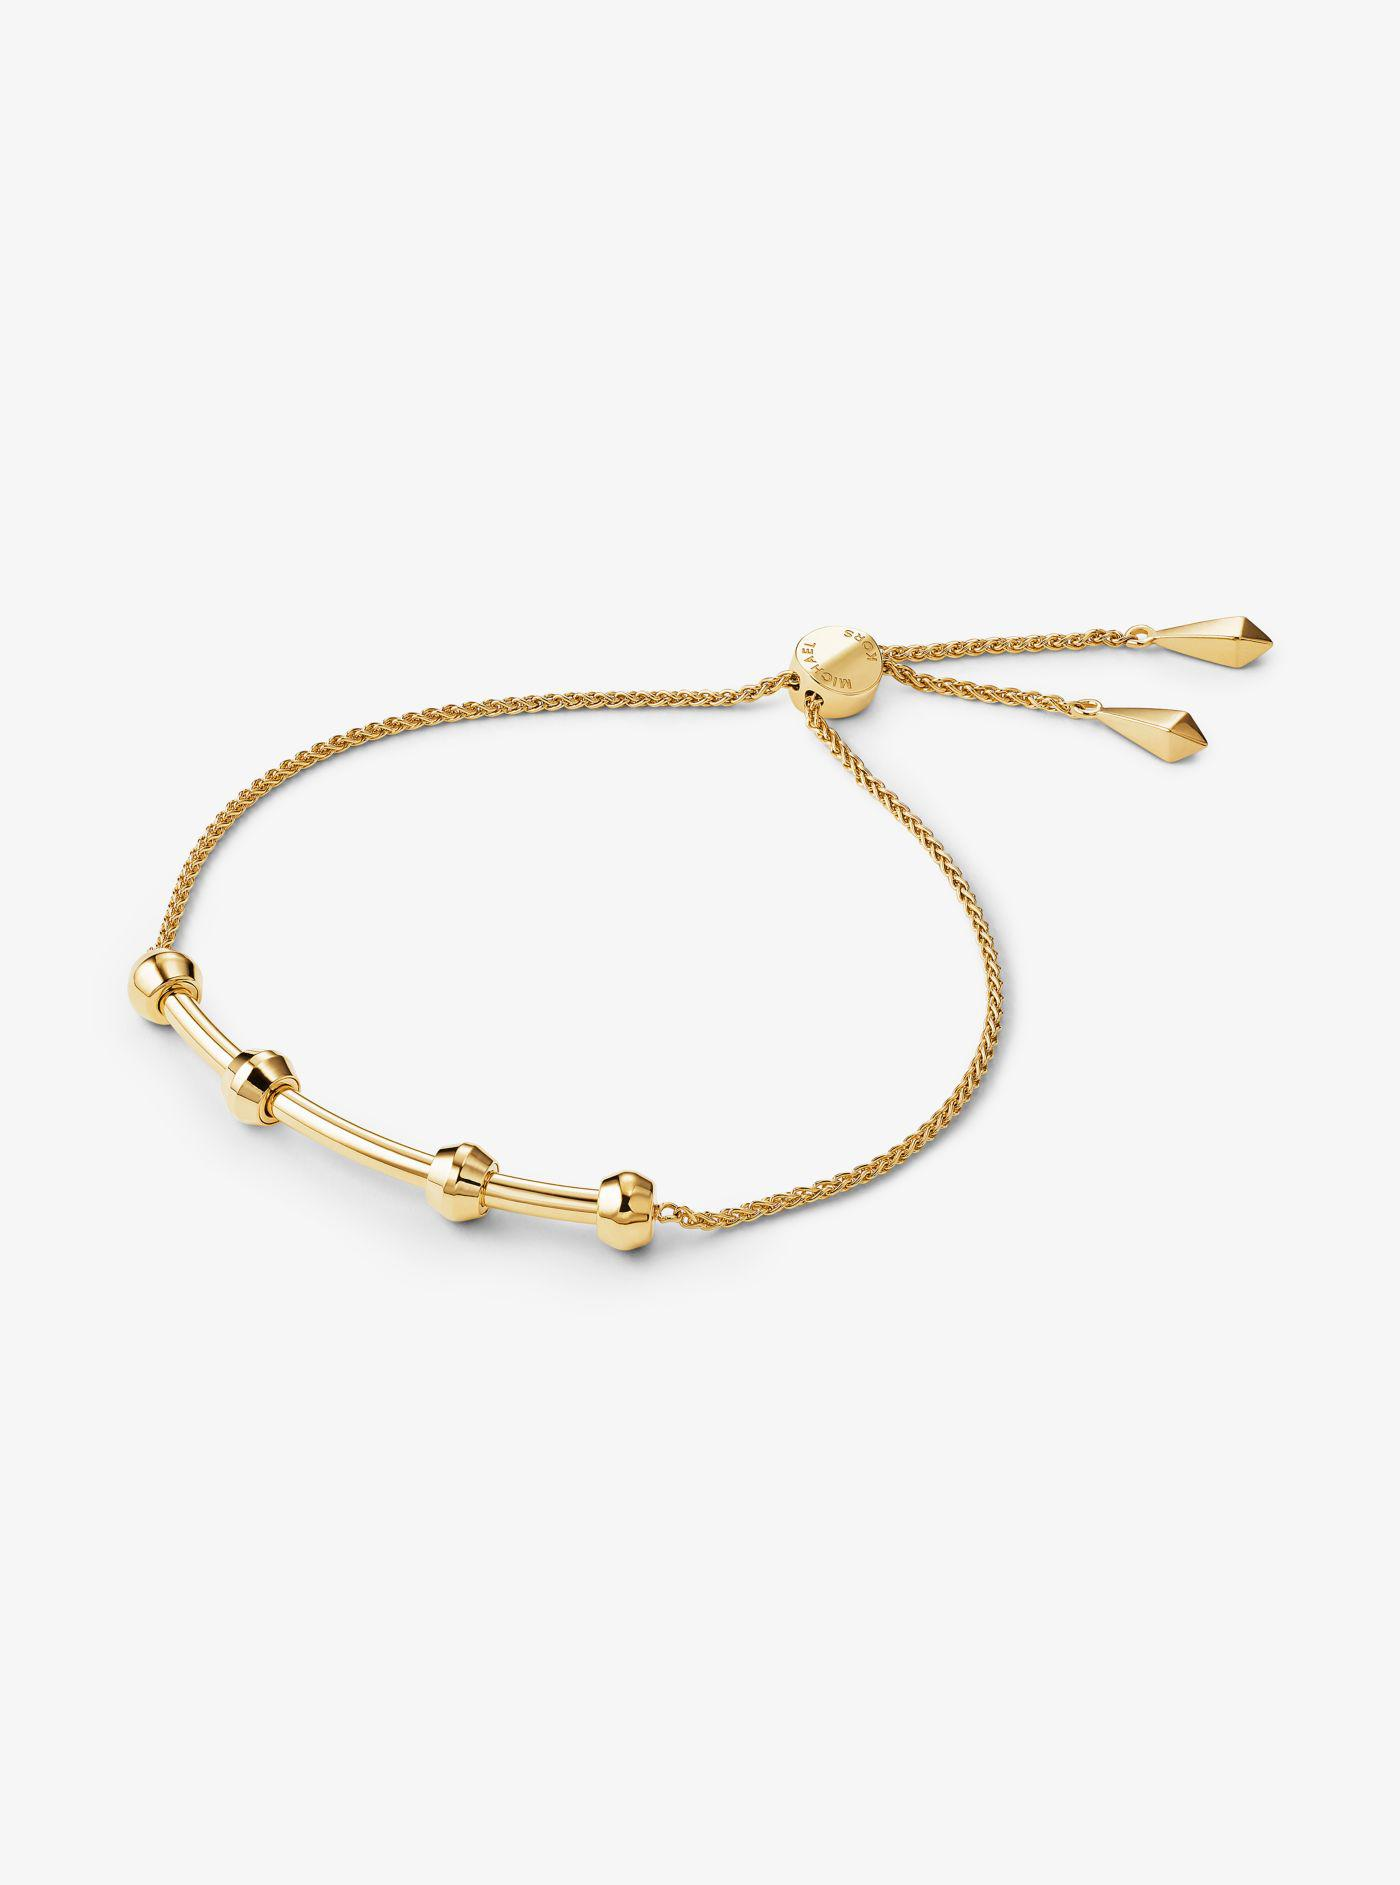 64b2a8854792 Lyst - Michael Kors 14k Rose Gold-plated Sterling Silver Or Solid ...